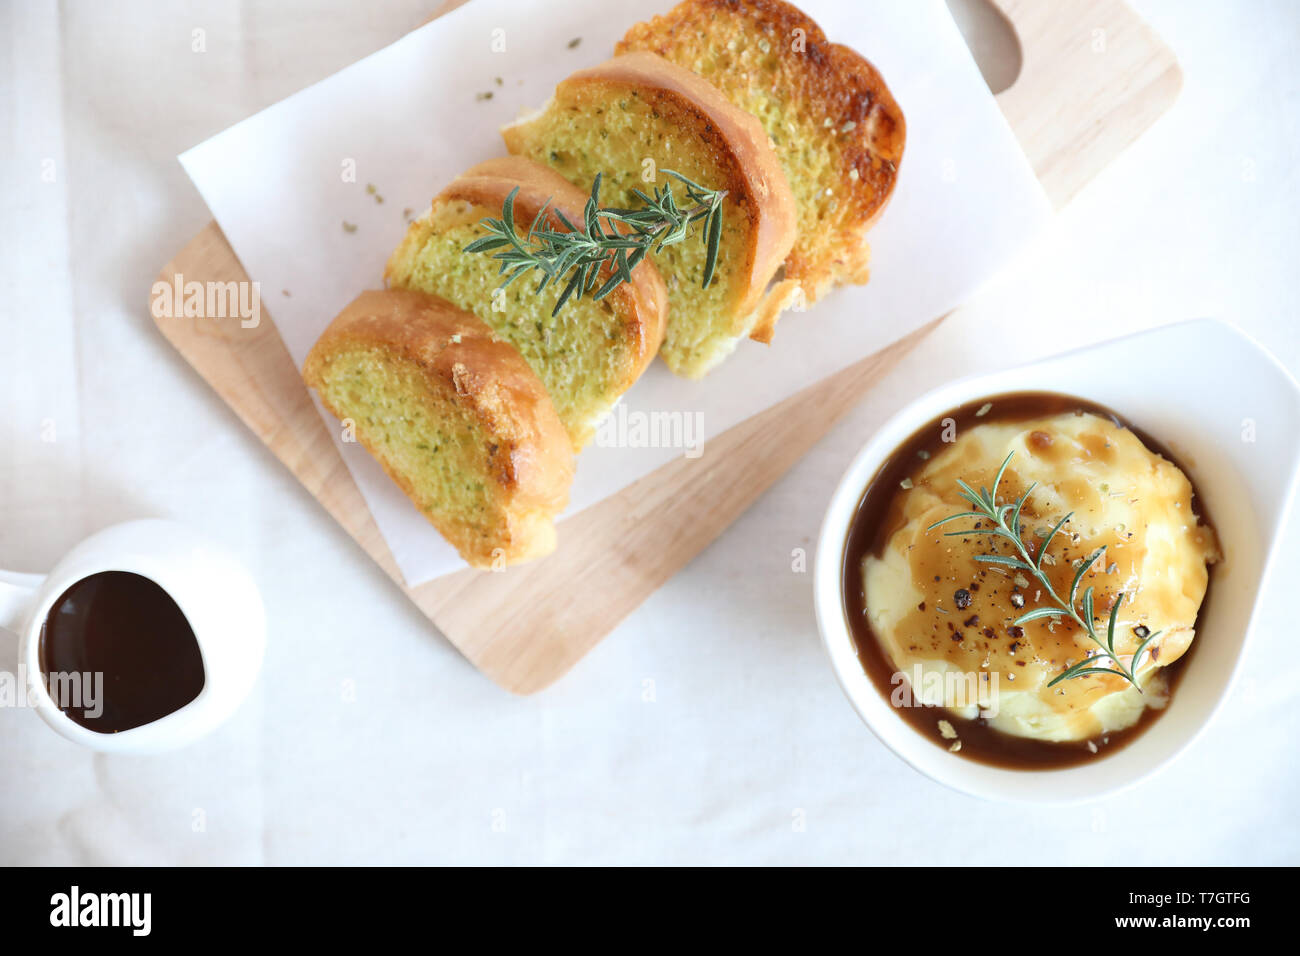 Mashed potato with gravy and bread - Stock Image